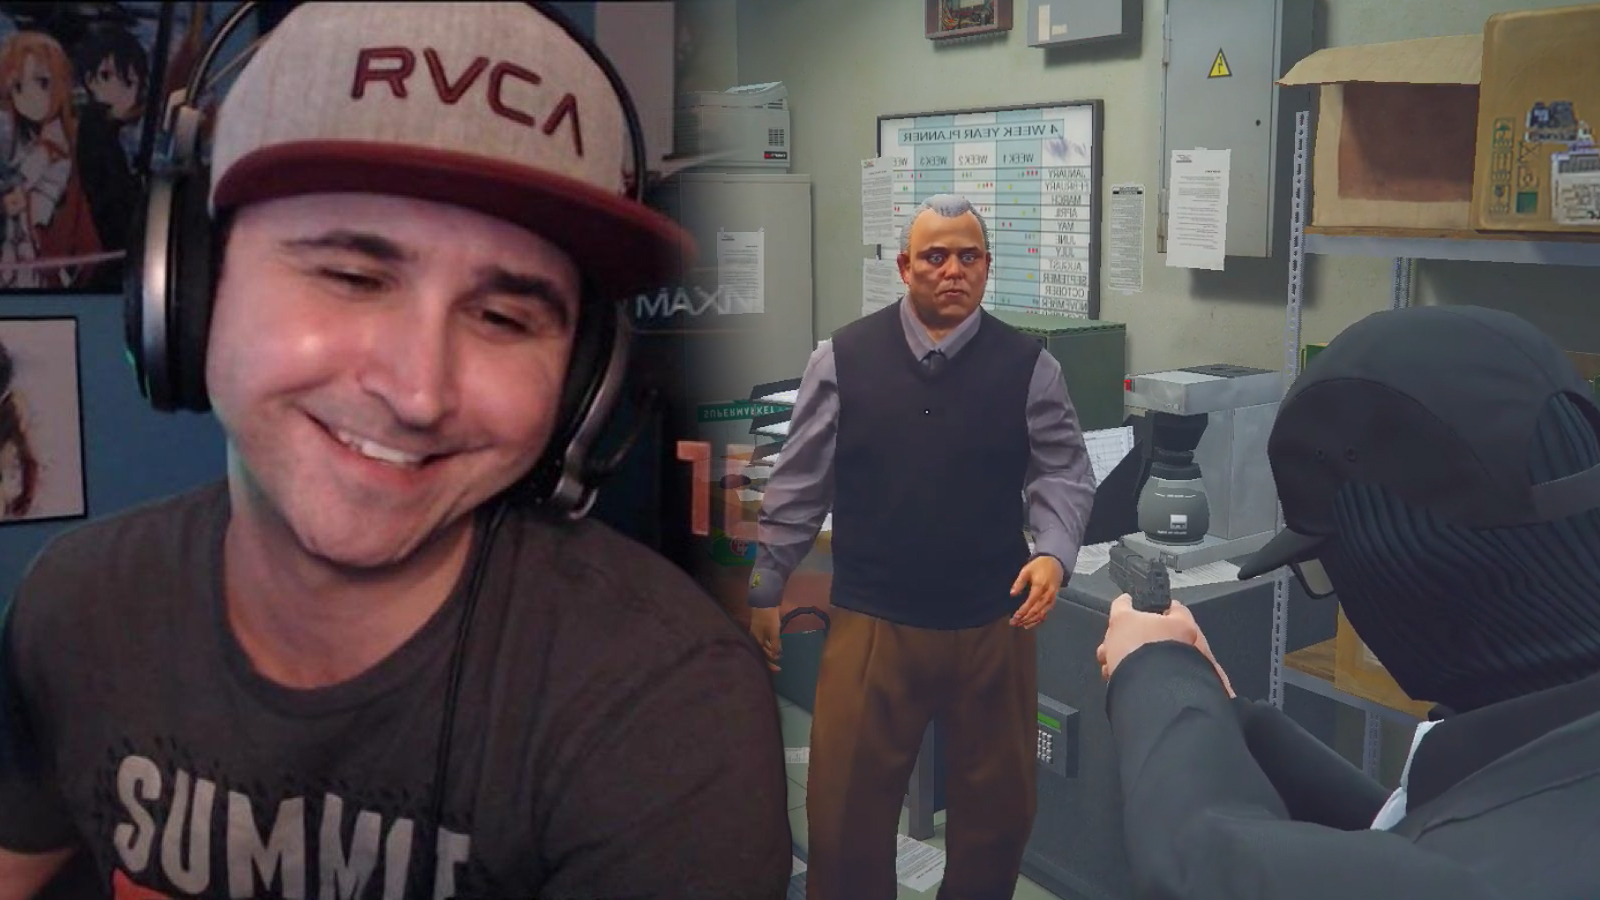 Summit1g playing NoPixel GTA RP